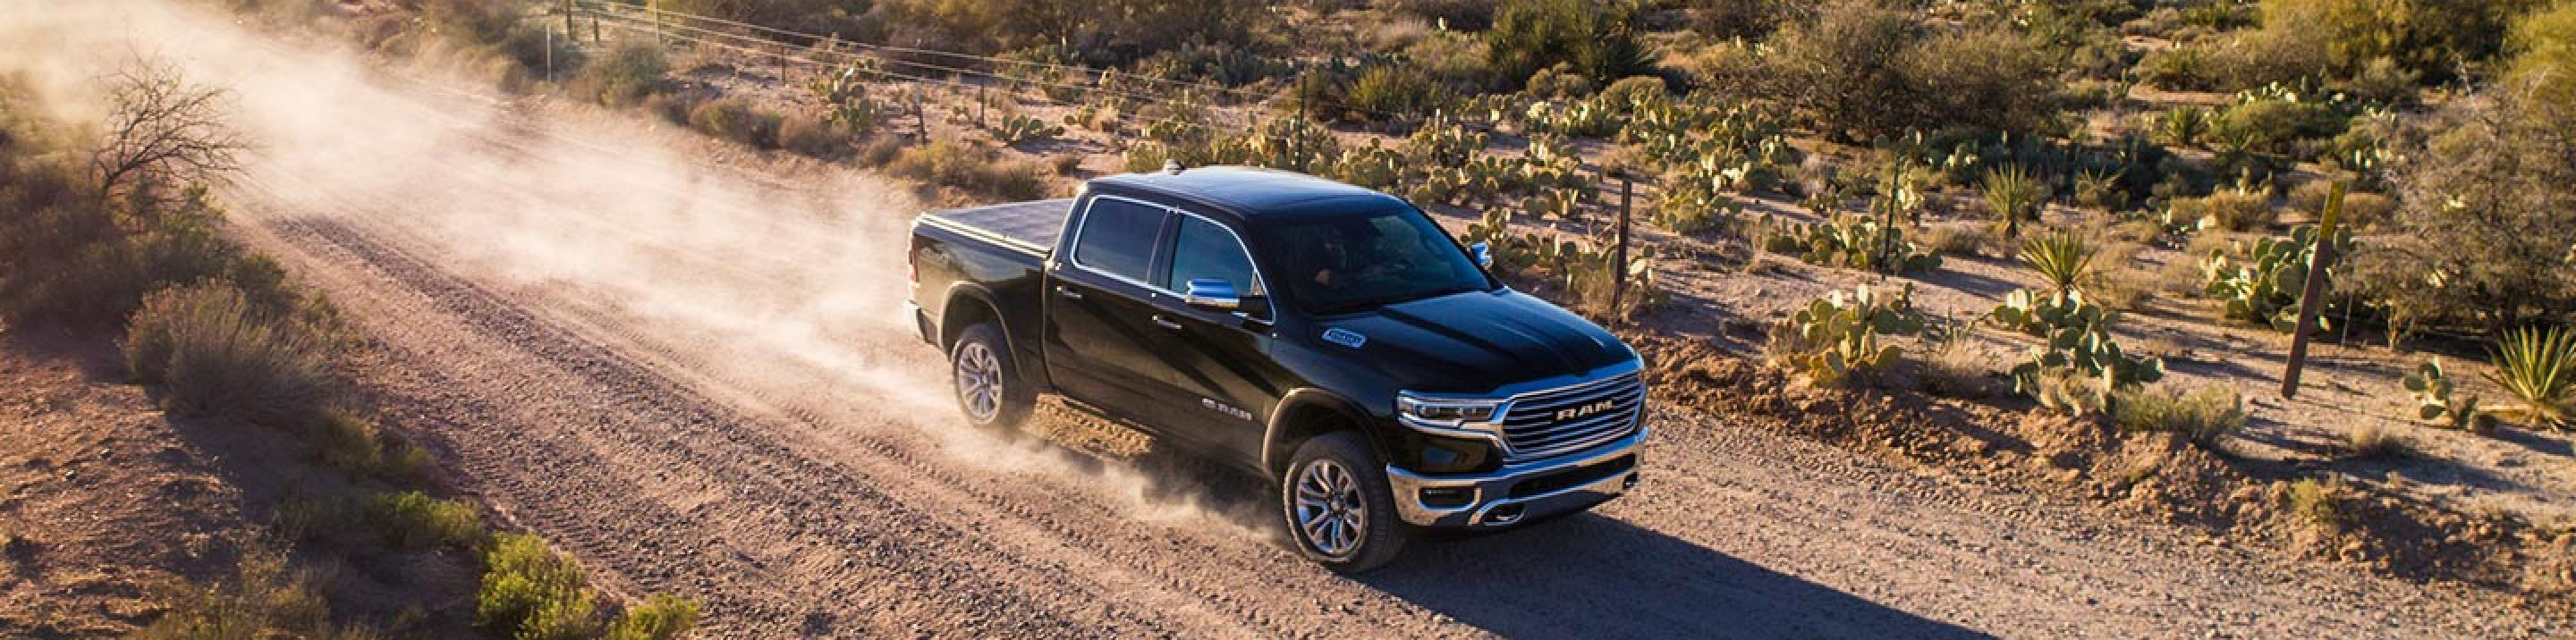 black 2019 ram 1500 driving through desert